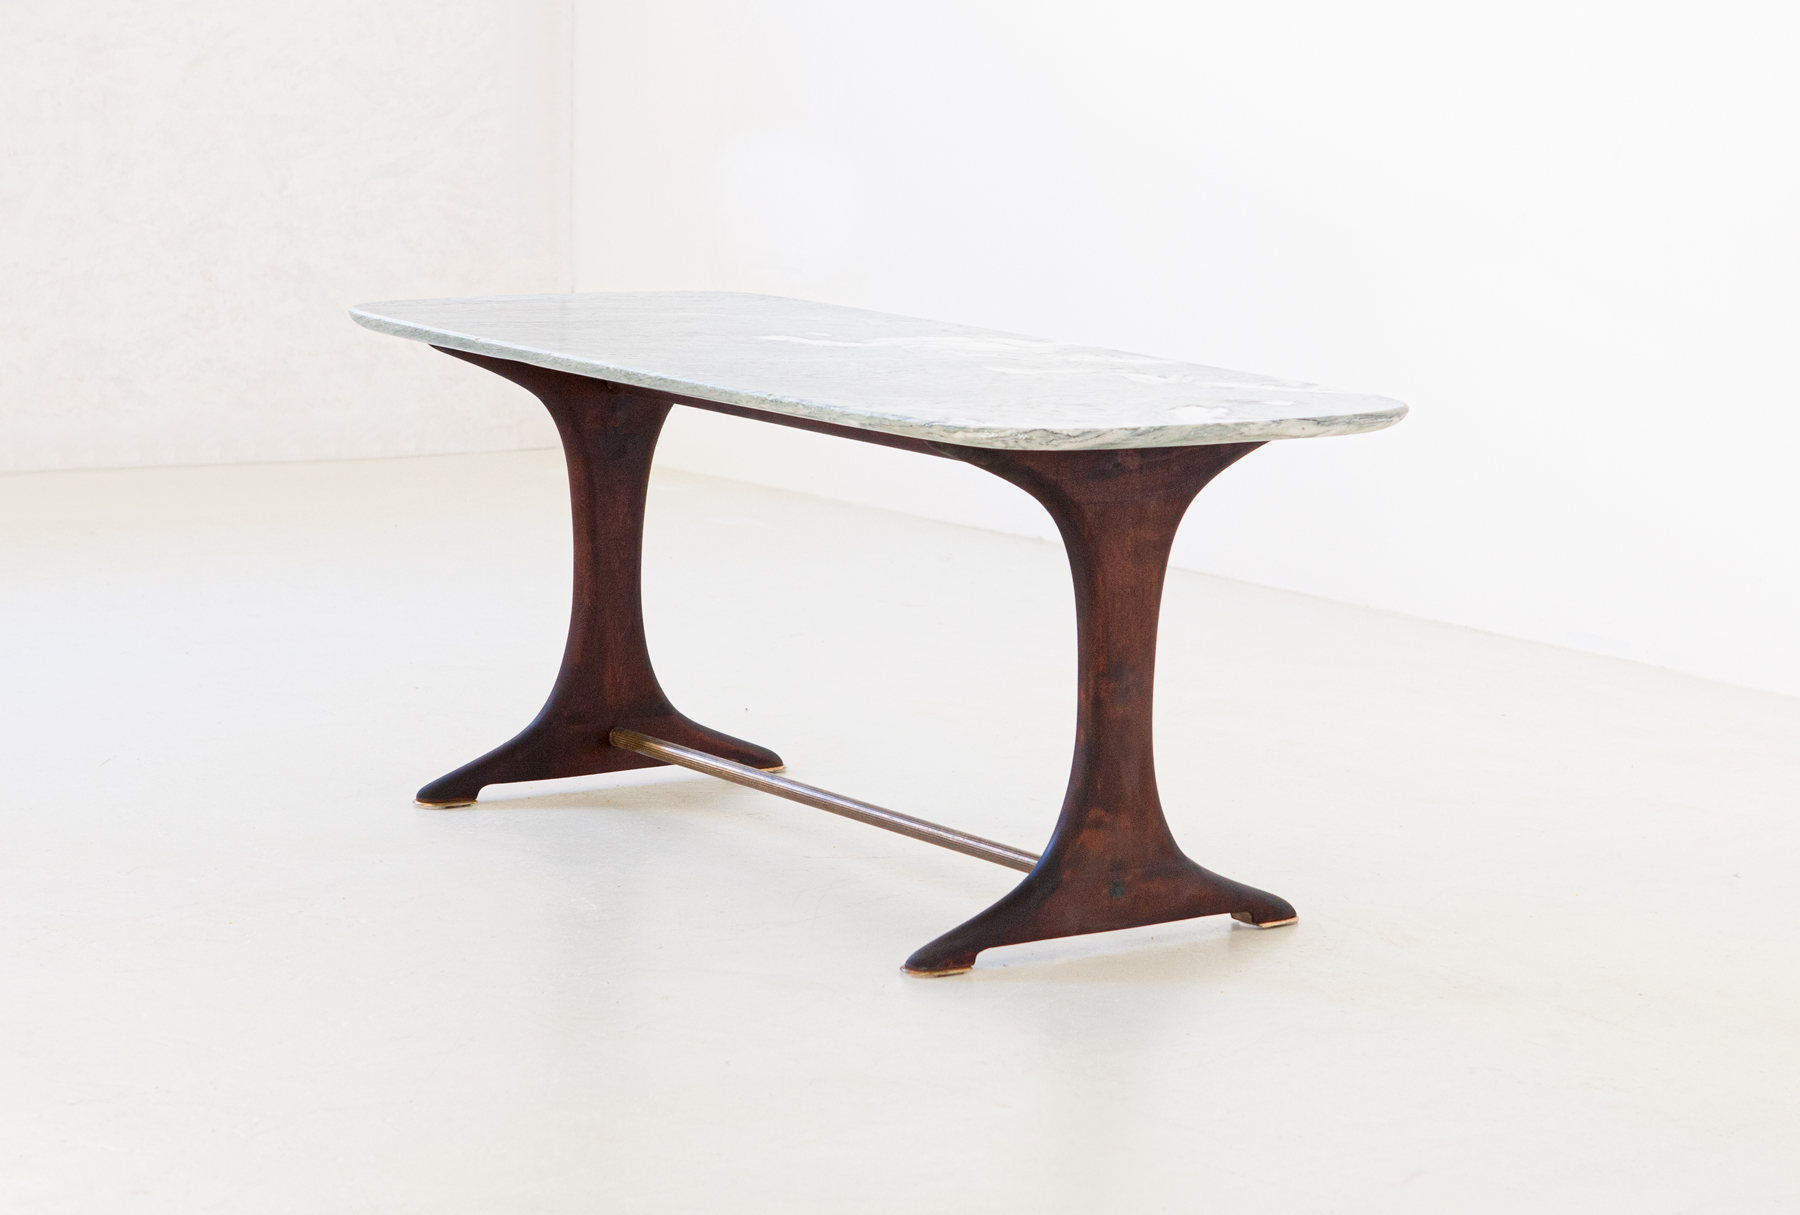 1950s-italian-low-table-with-marble-top-3-t88